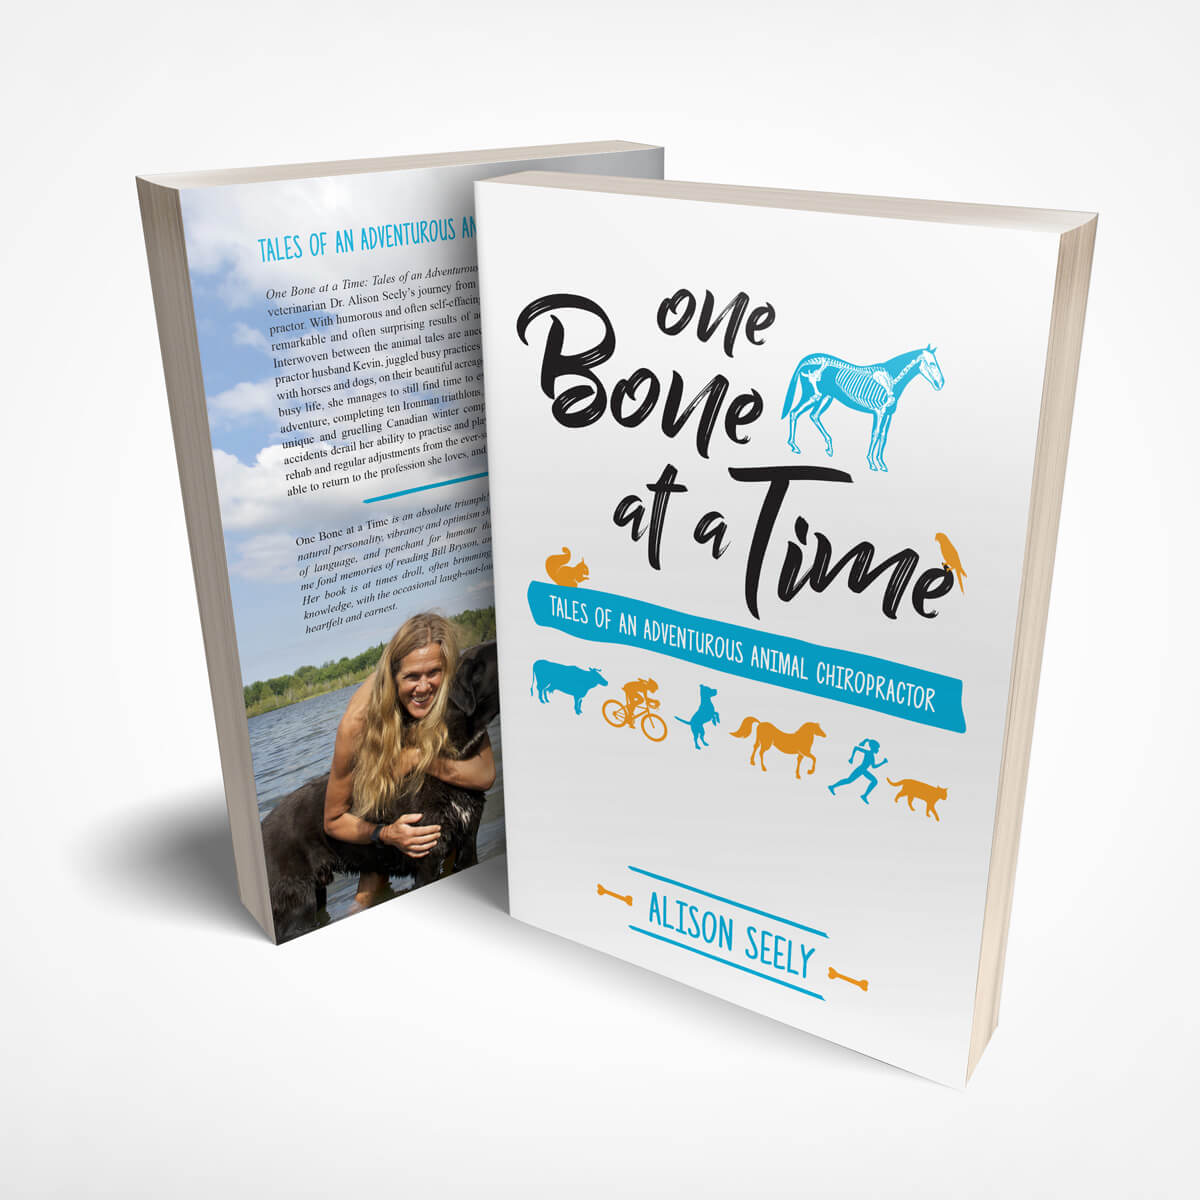 One Bone at a time book cover